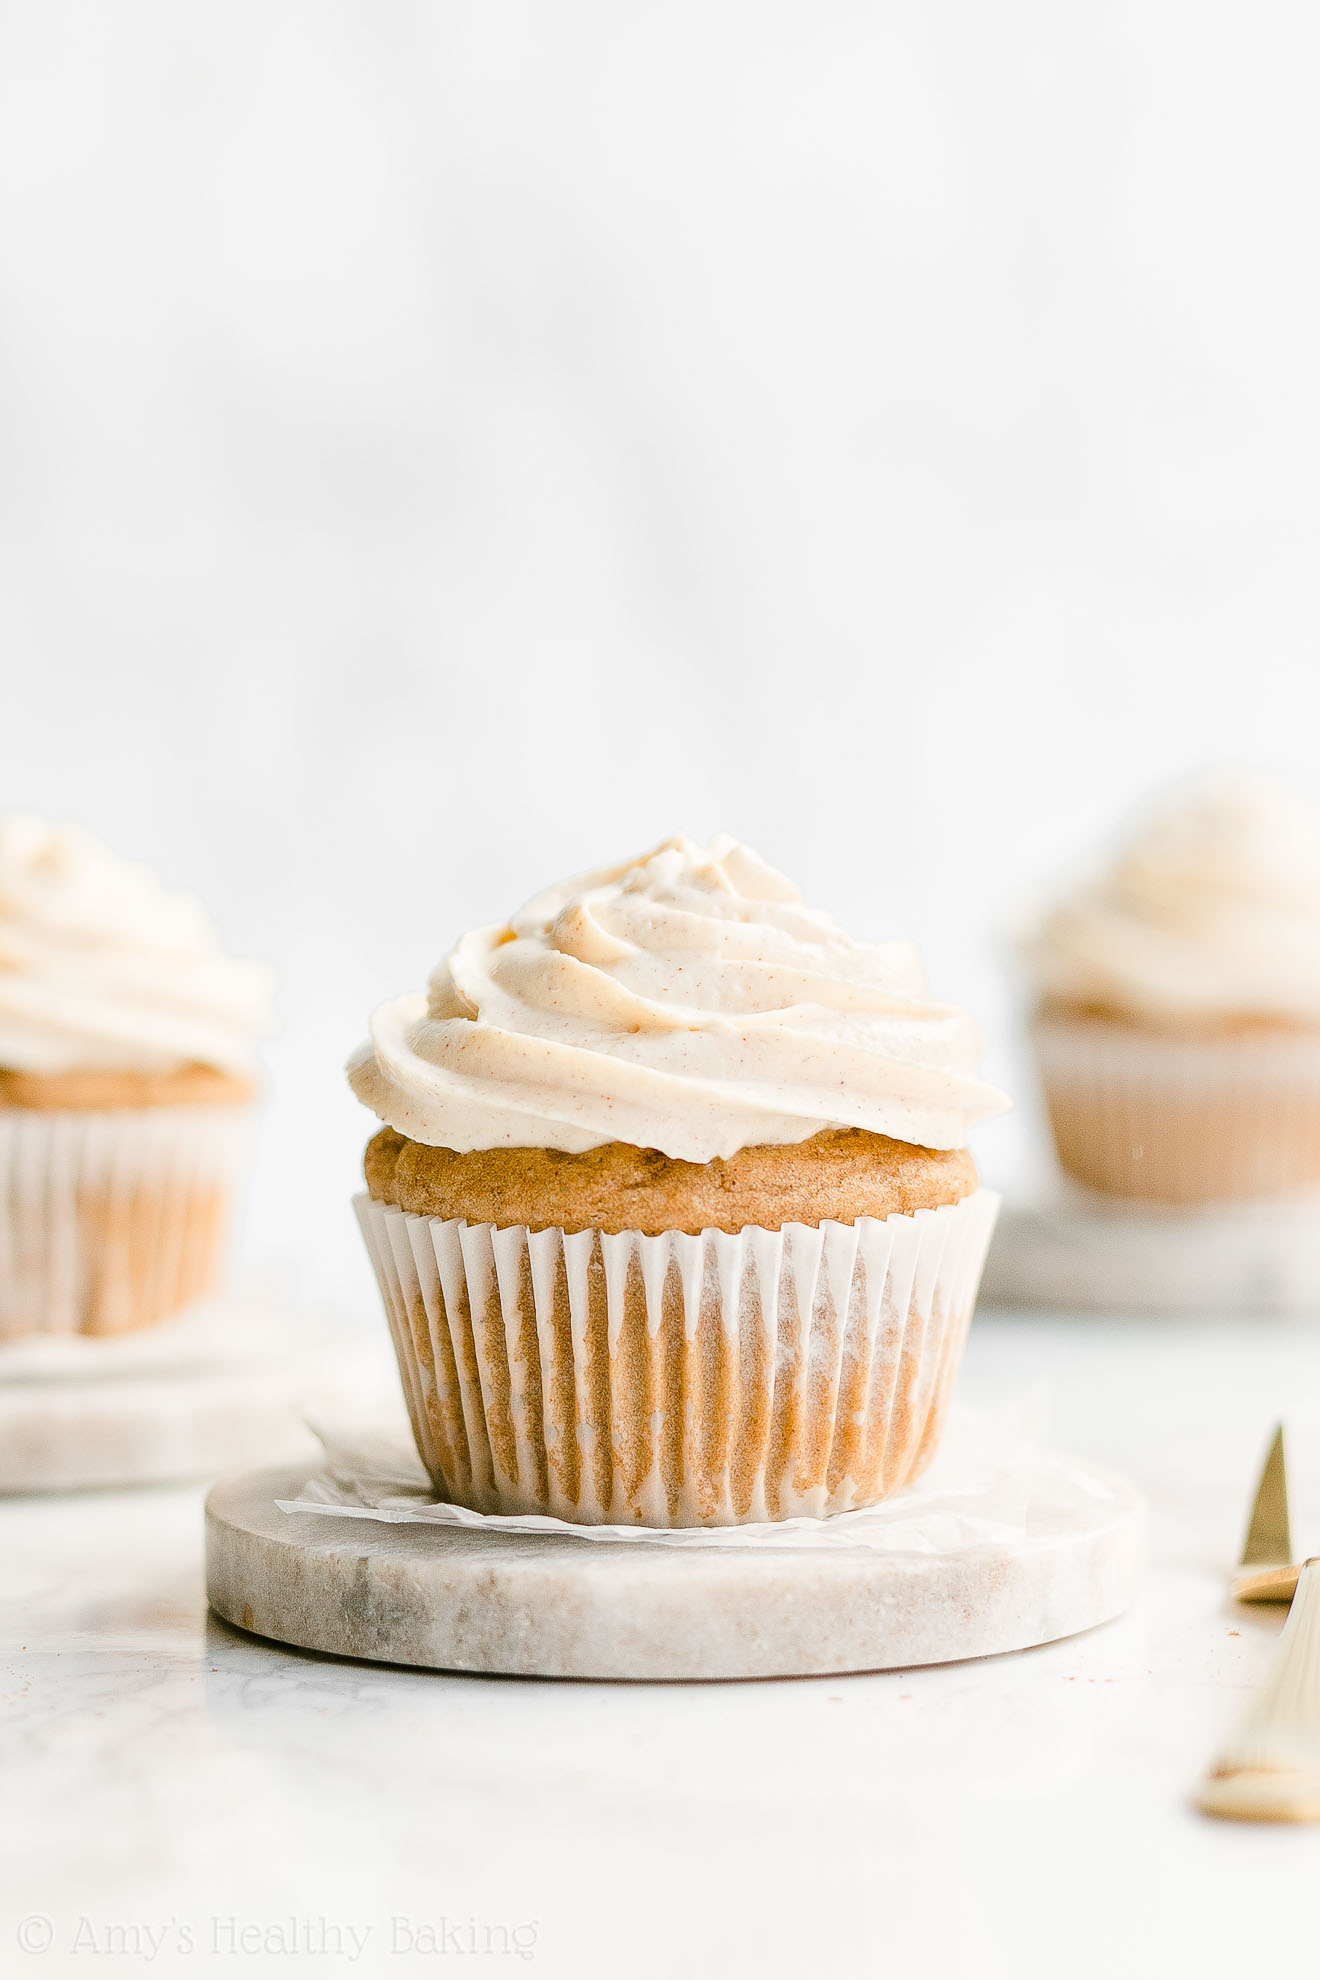 Healthy Gluten Free Sugar Free Moist Holiday Eggnog Cupcakes